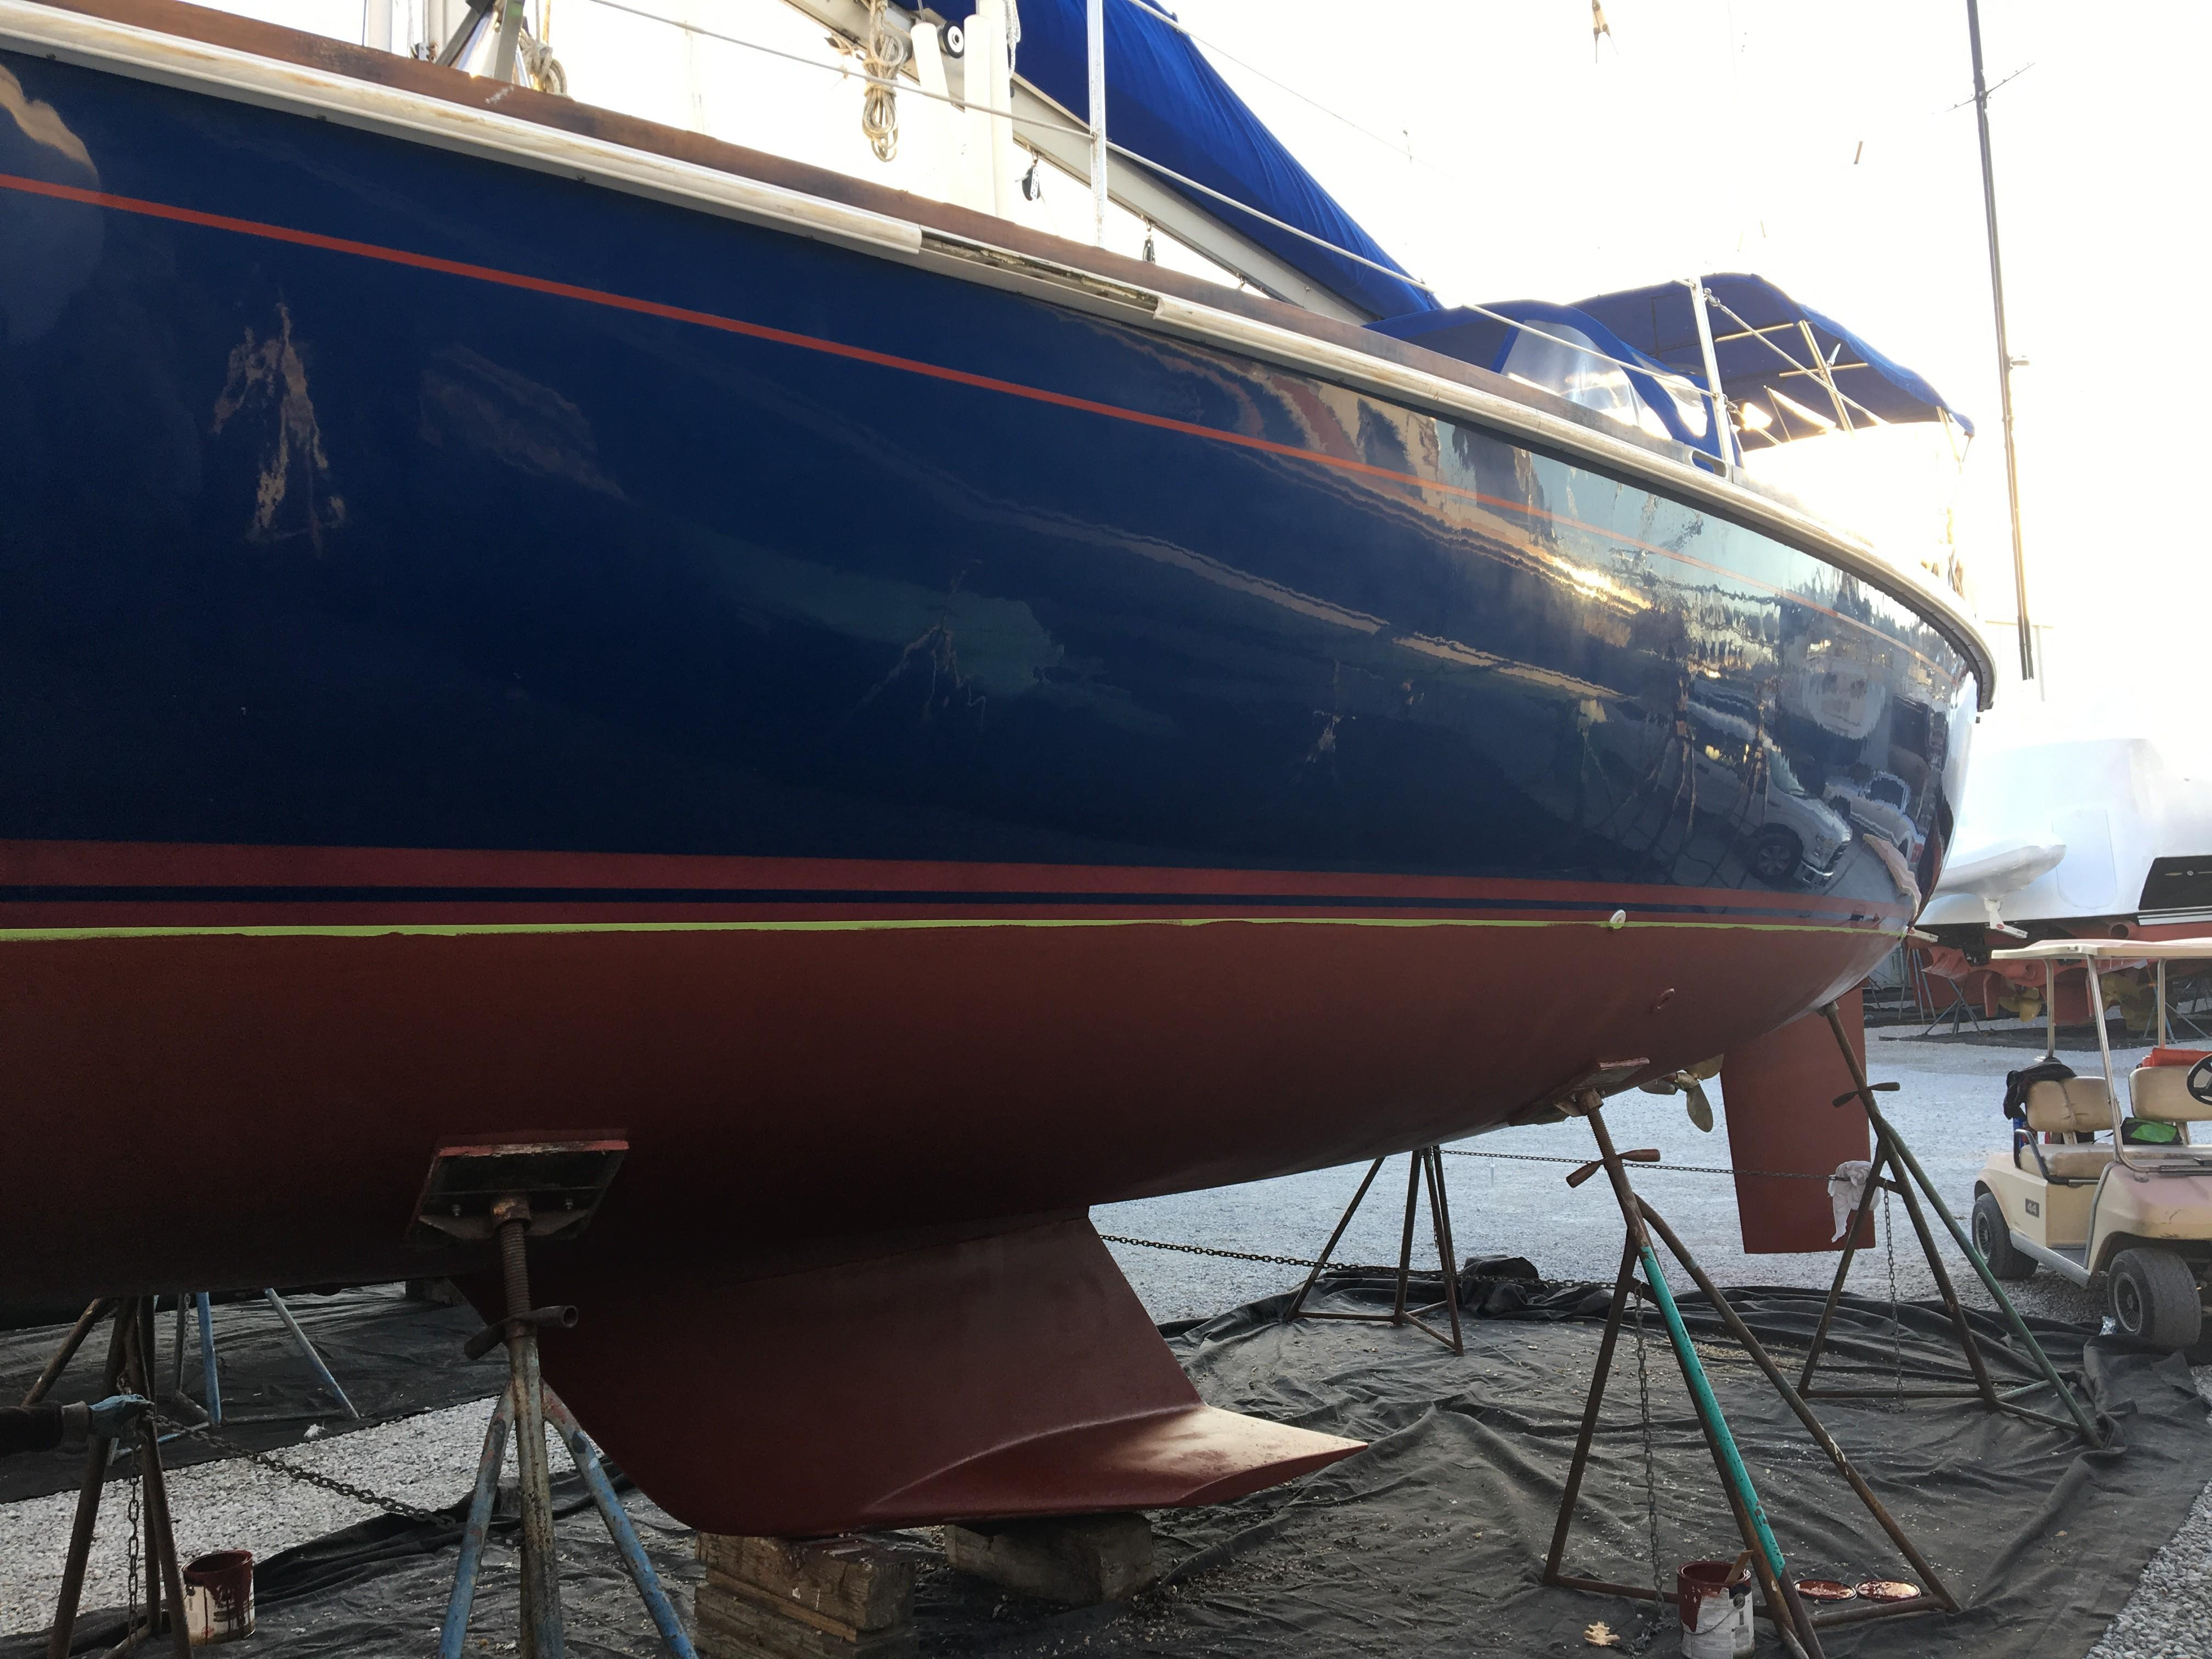 Waxed Hull and New Bottom Paint